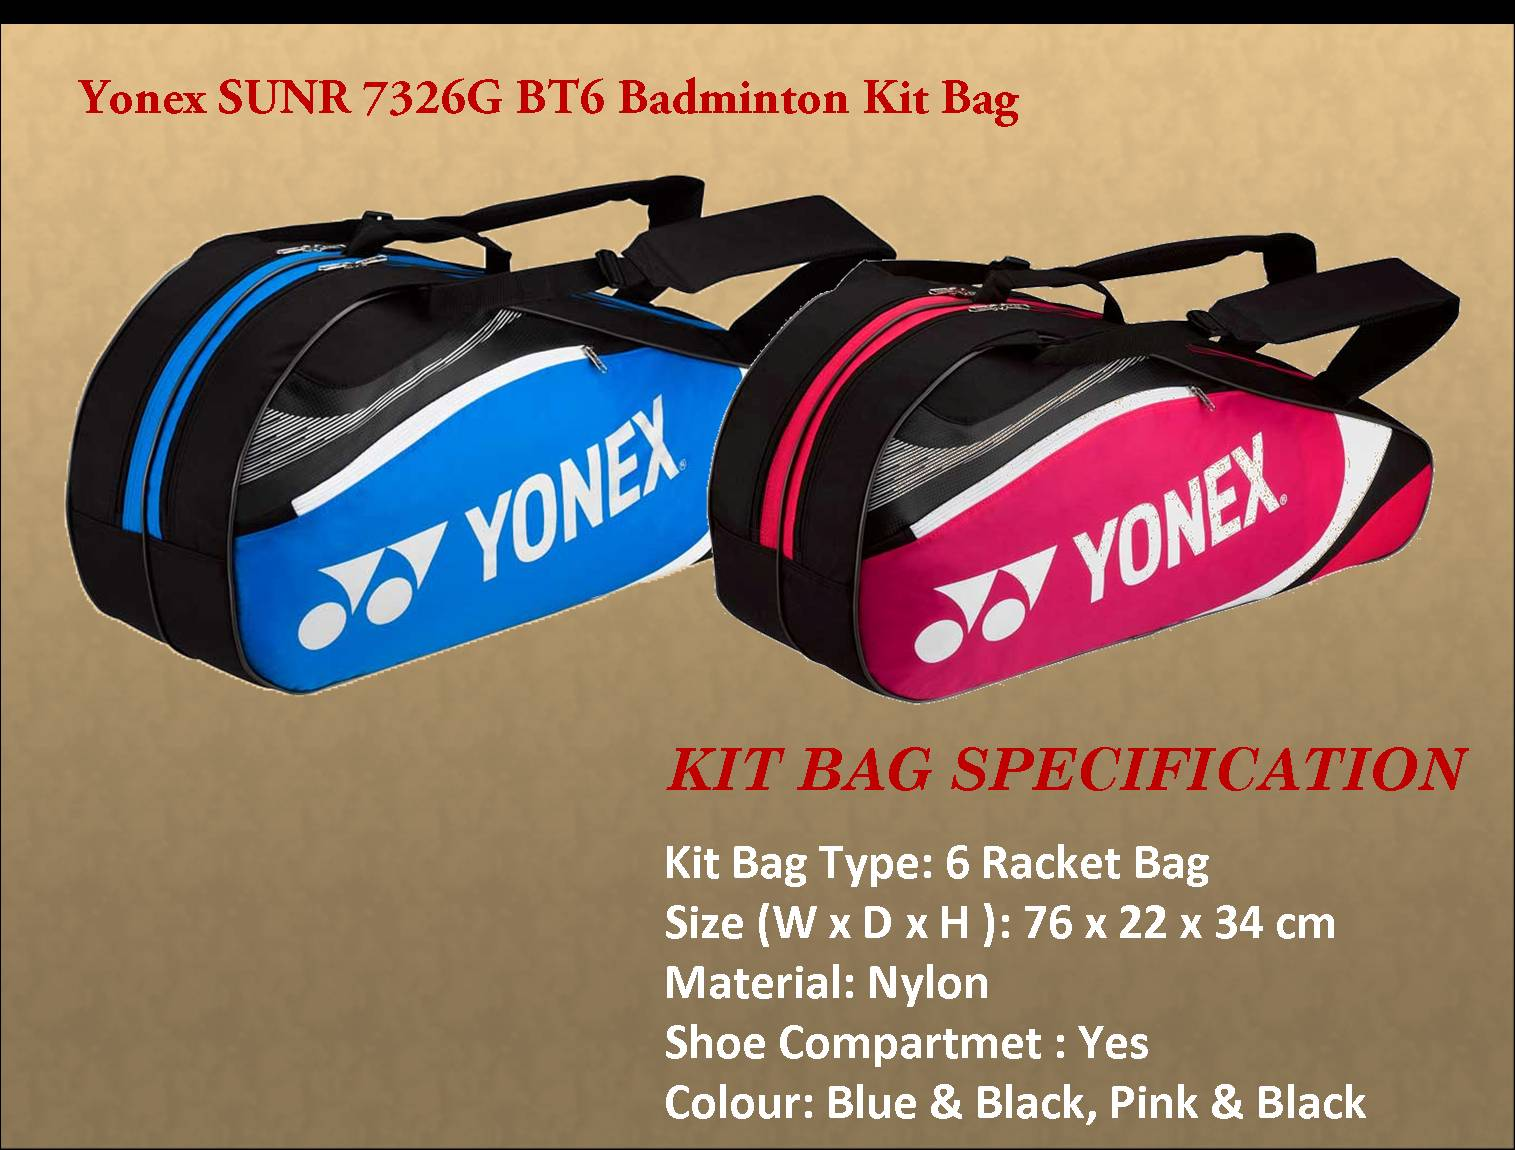 Yonex SUNR 7326G BT6 Badminton Kit Bag